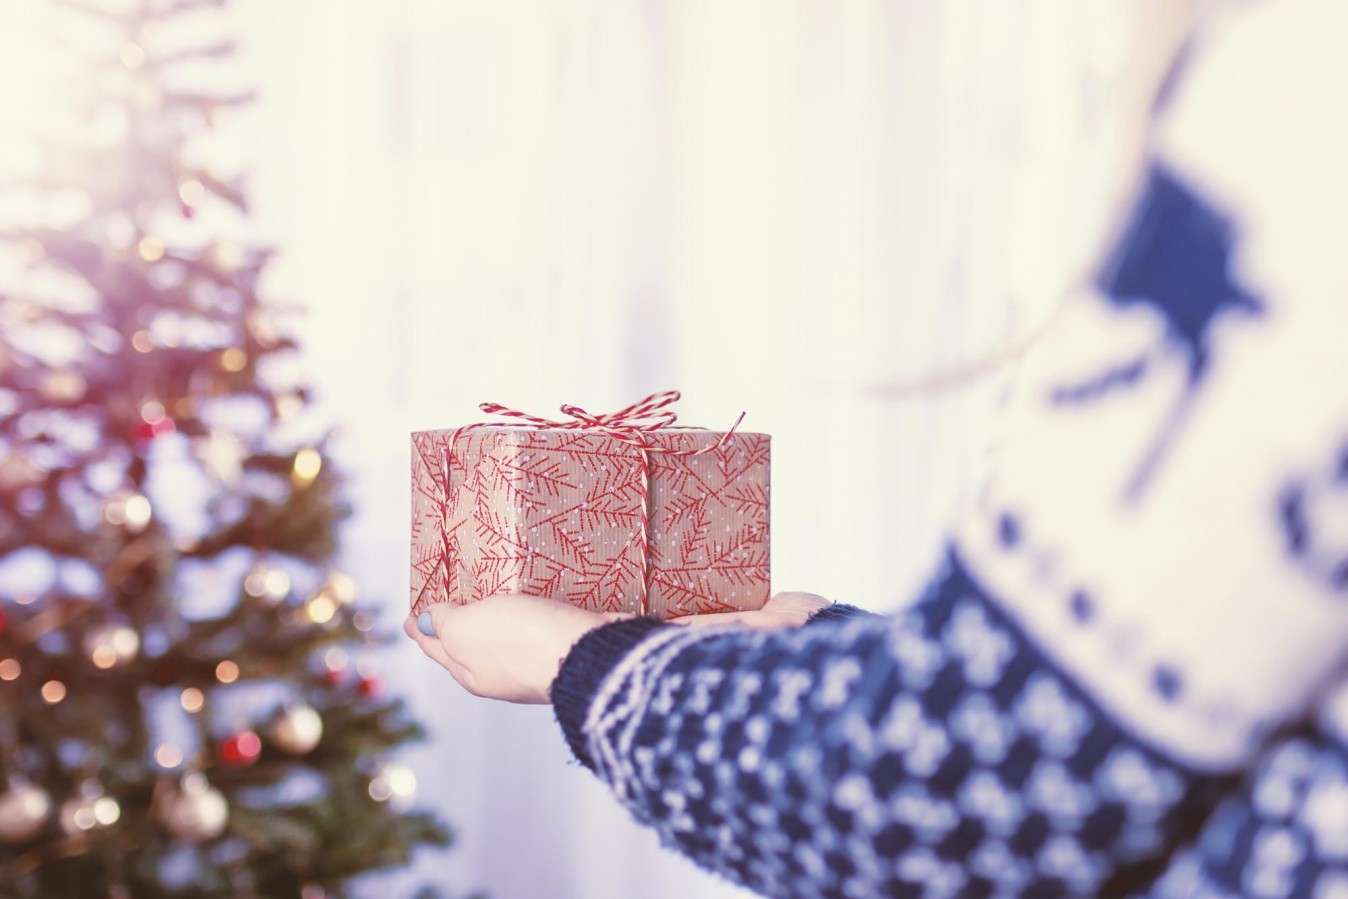 Someone holding a wrapped gift in front of a Christmas tree